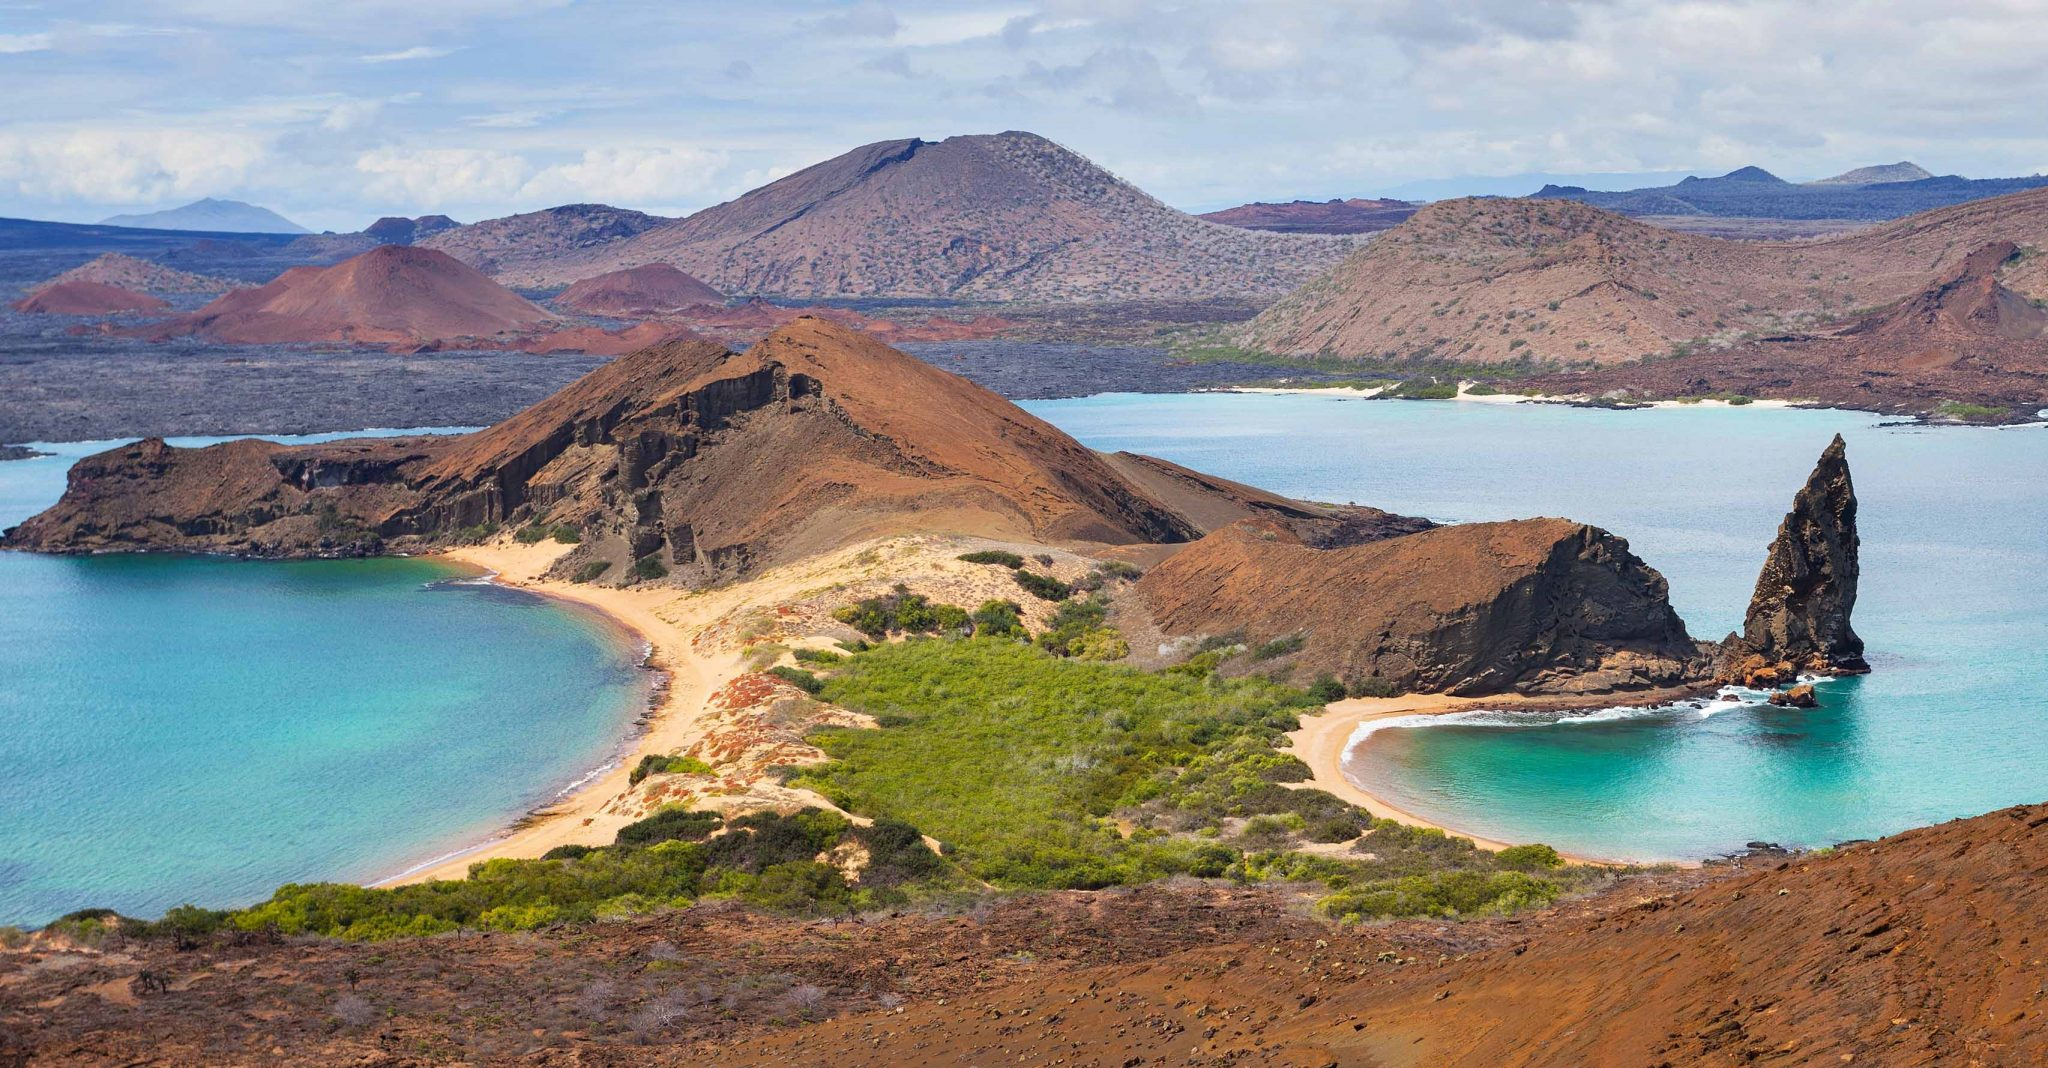 Galapagos Islands Bartholome Island Ecuador Santa Cruz South America South American Travel Specialists